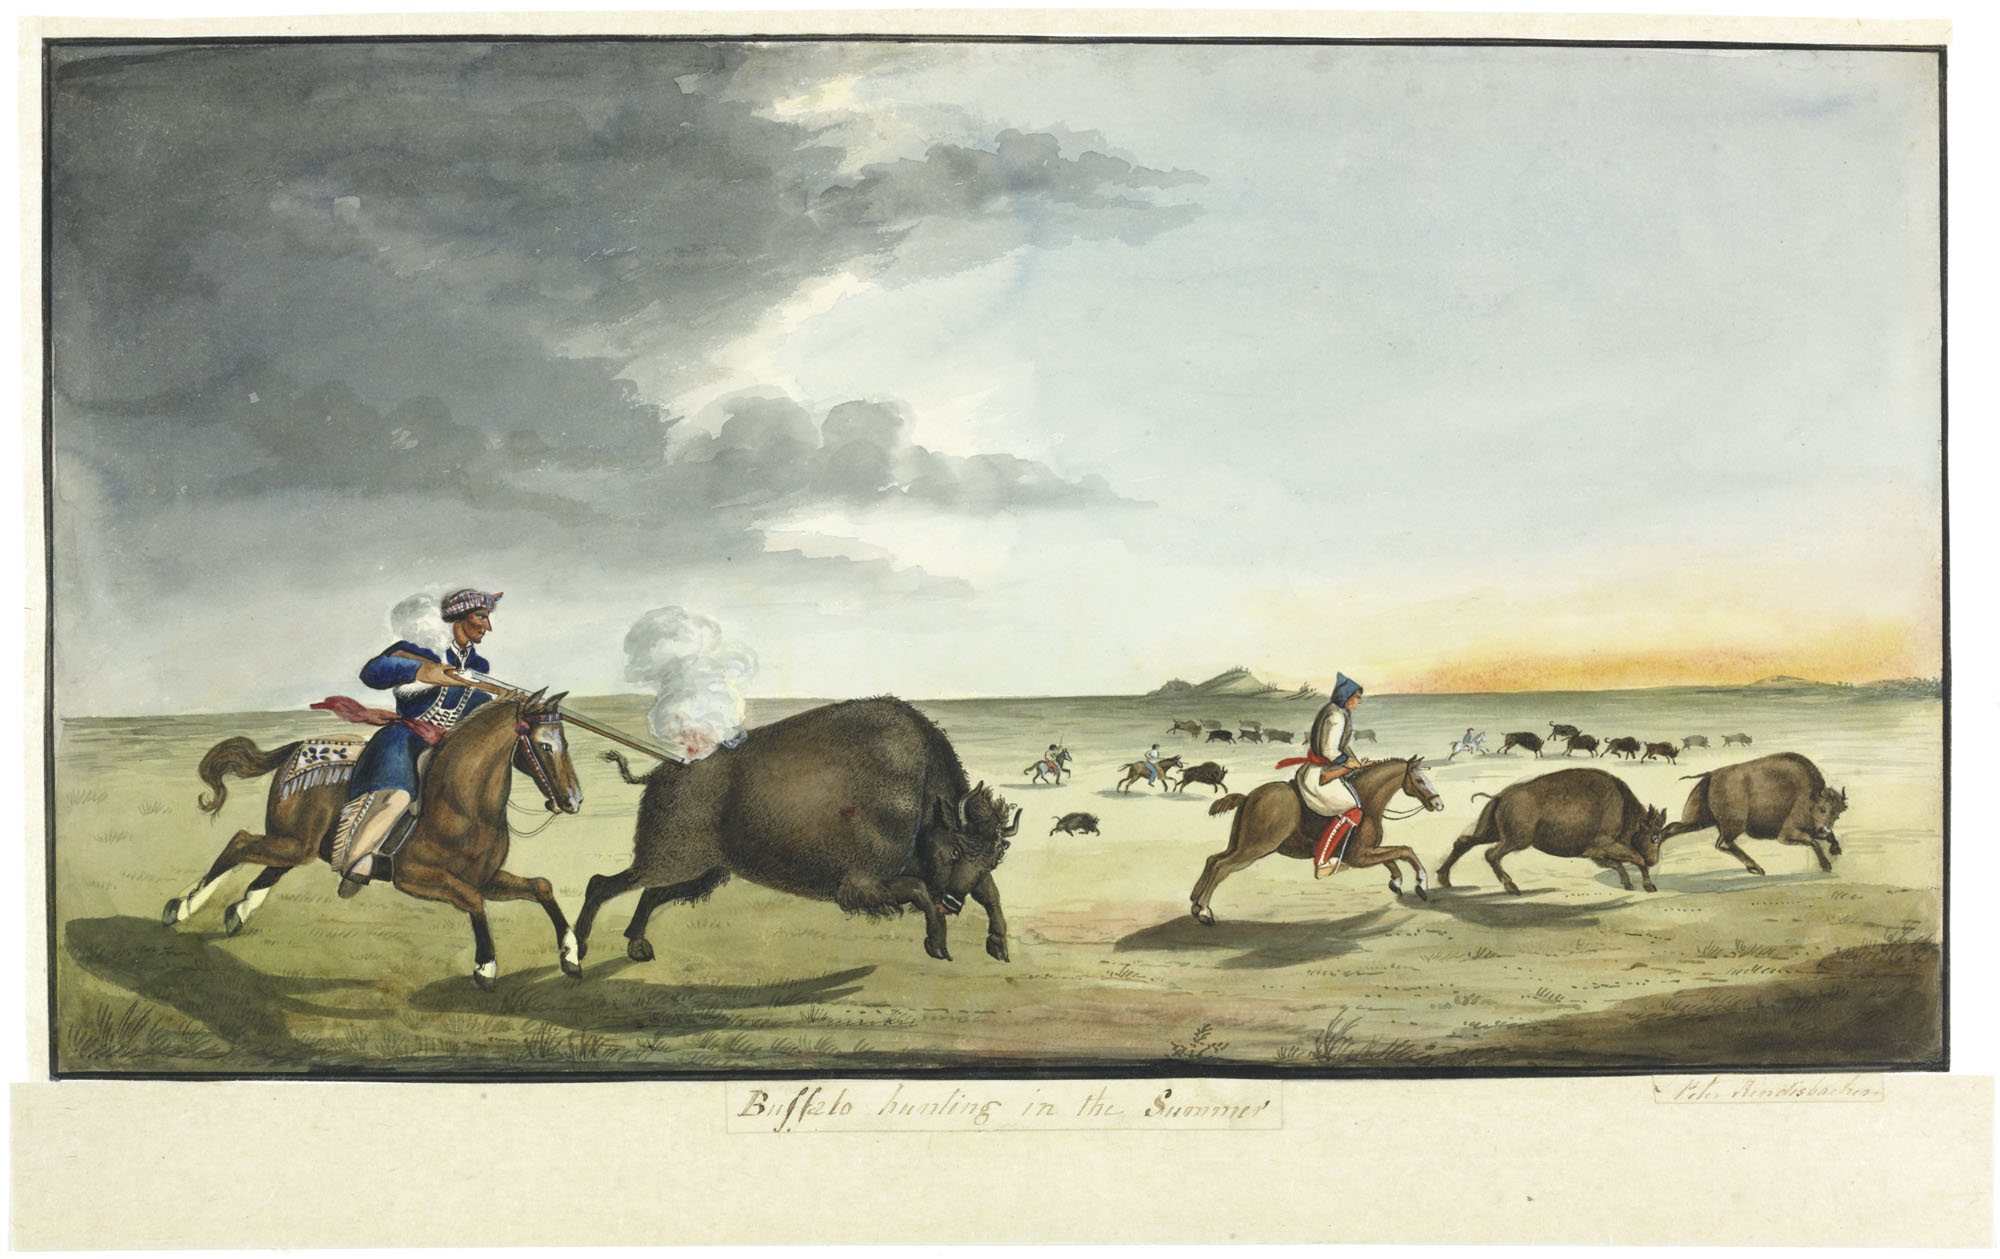 Watercolour, pen and ink on paper of a man on horseback firing a gun at a buffalo while, in the distance, other men on  horseback pursue buffalo on the plains.